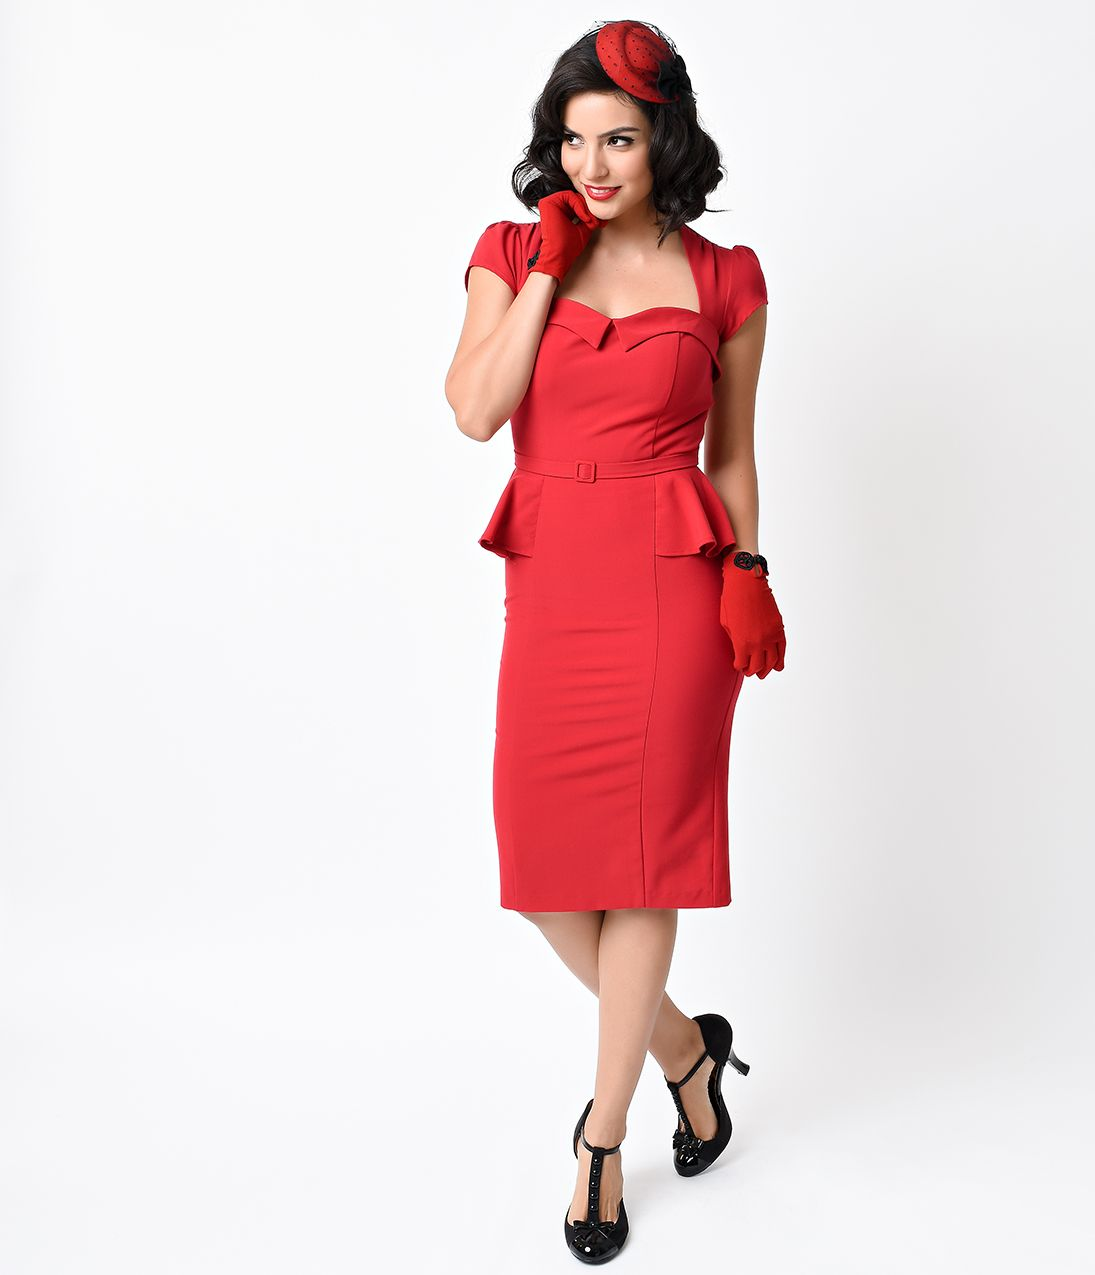 Wiggle Dresses | 1940s Style Clothing | Dresses, 1940s ...